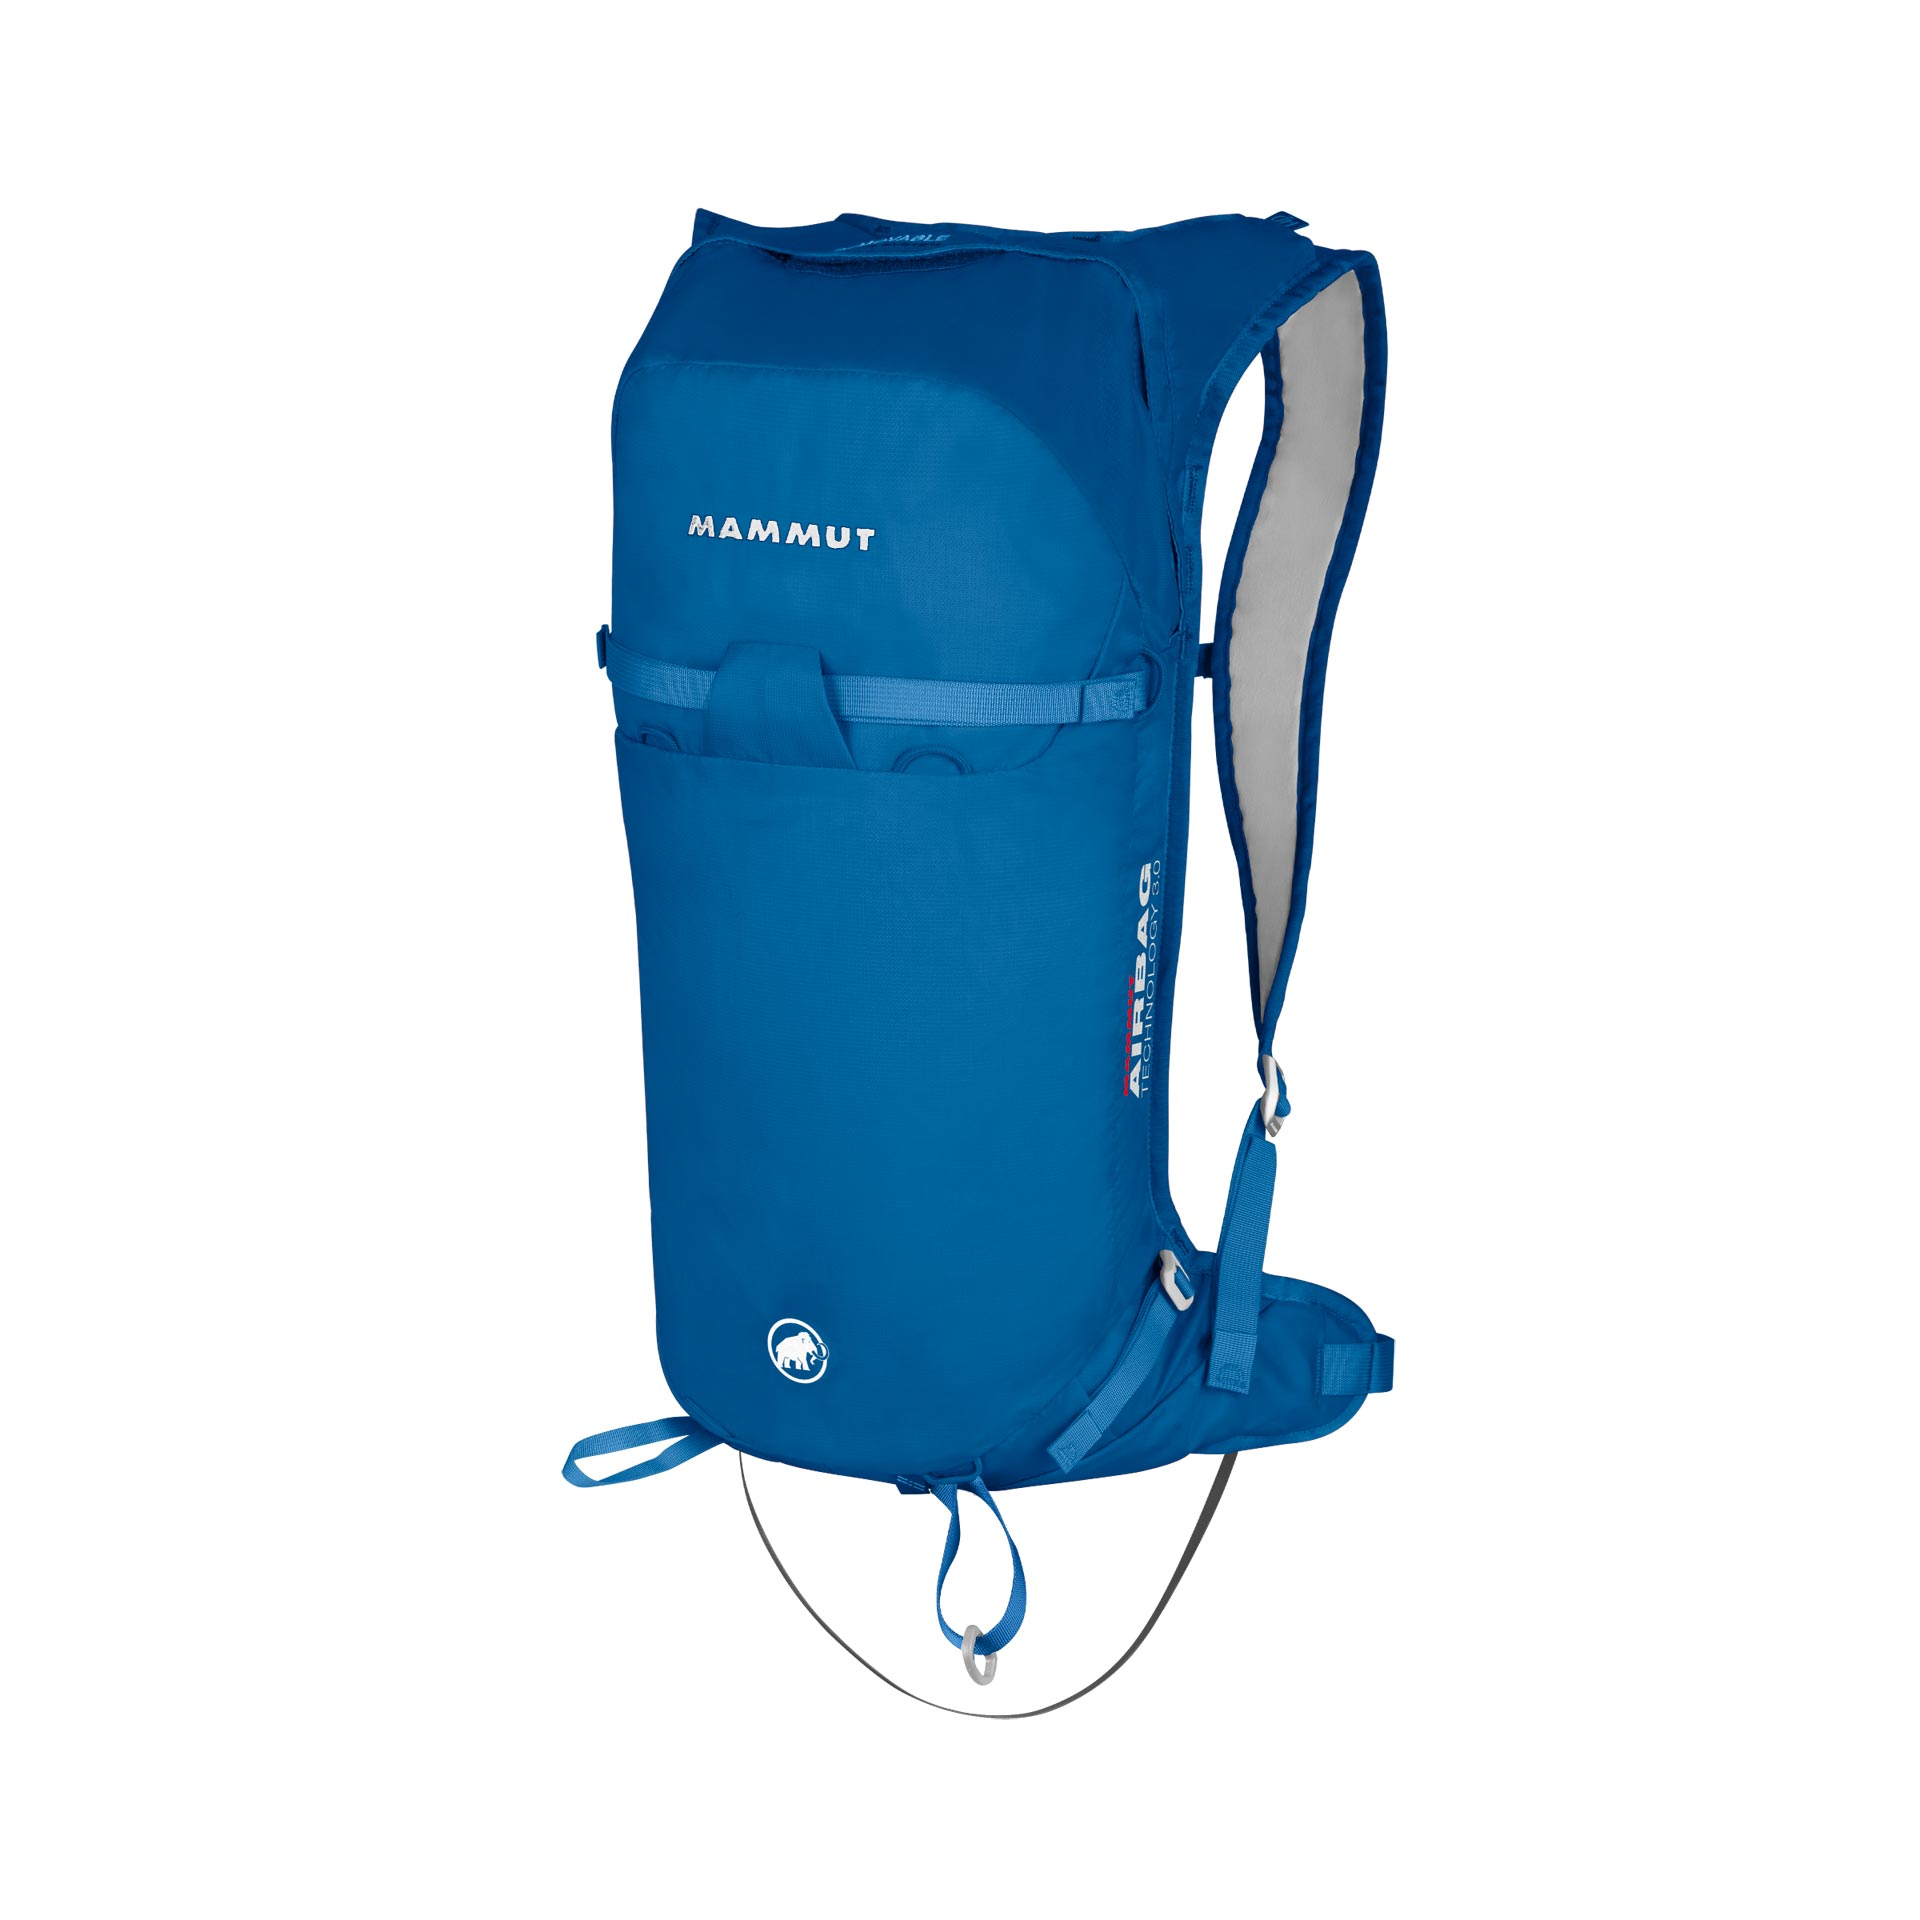 Mammut: Ultralight Removable Airbag 3.0